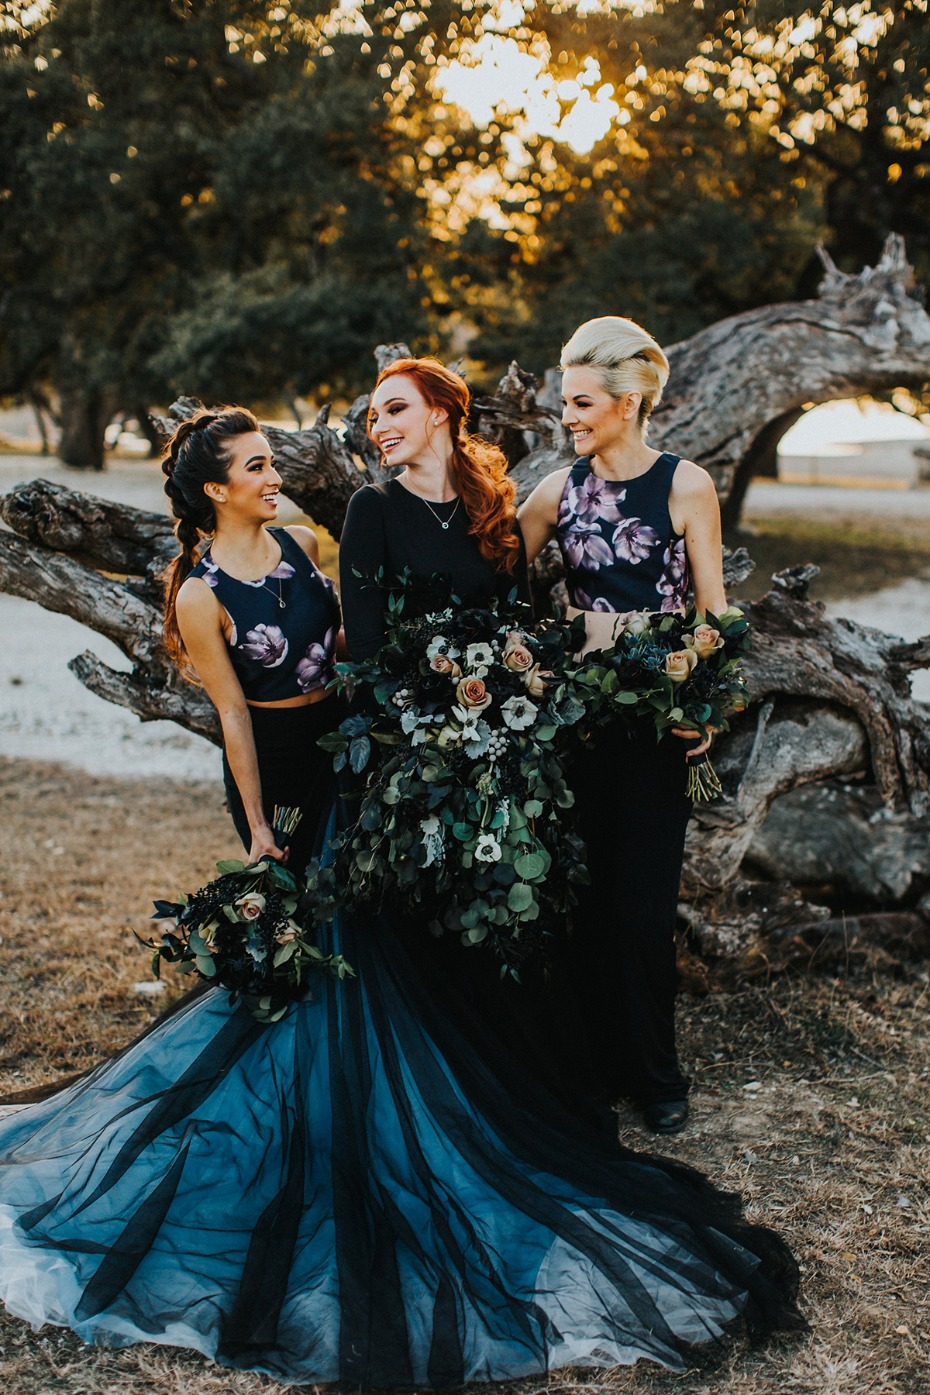 dramatic and dark themed wedding party